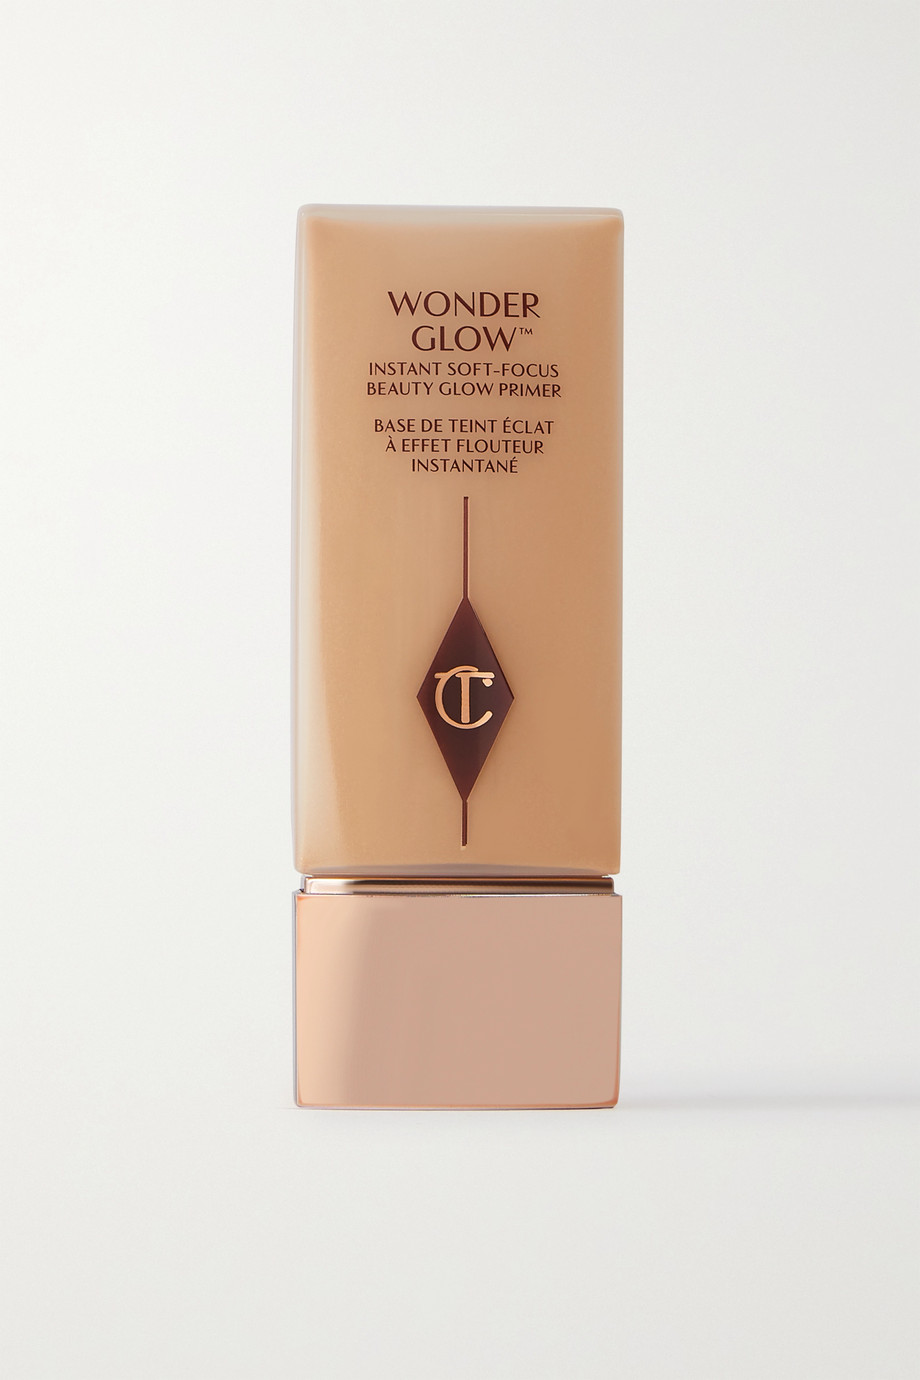 Charlotte Tilbury Wonder Glow Instant Soft-Focus Beauty Flash, 40ml